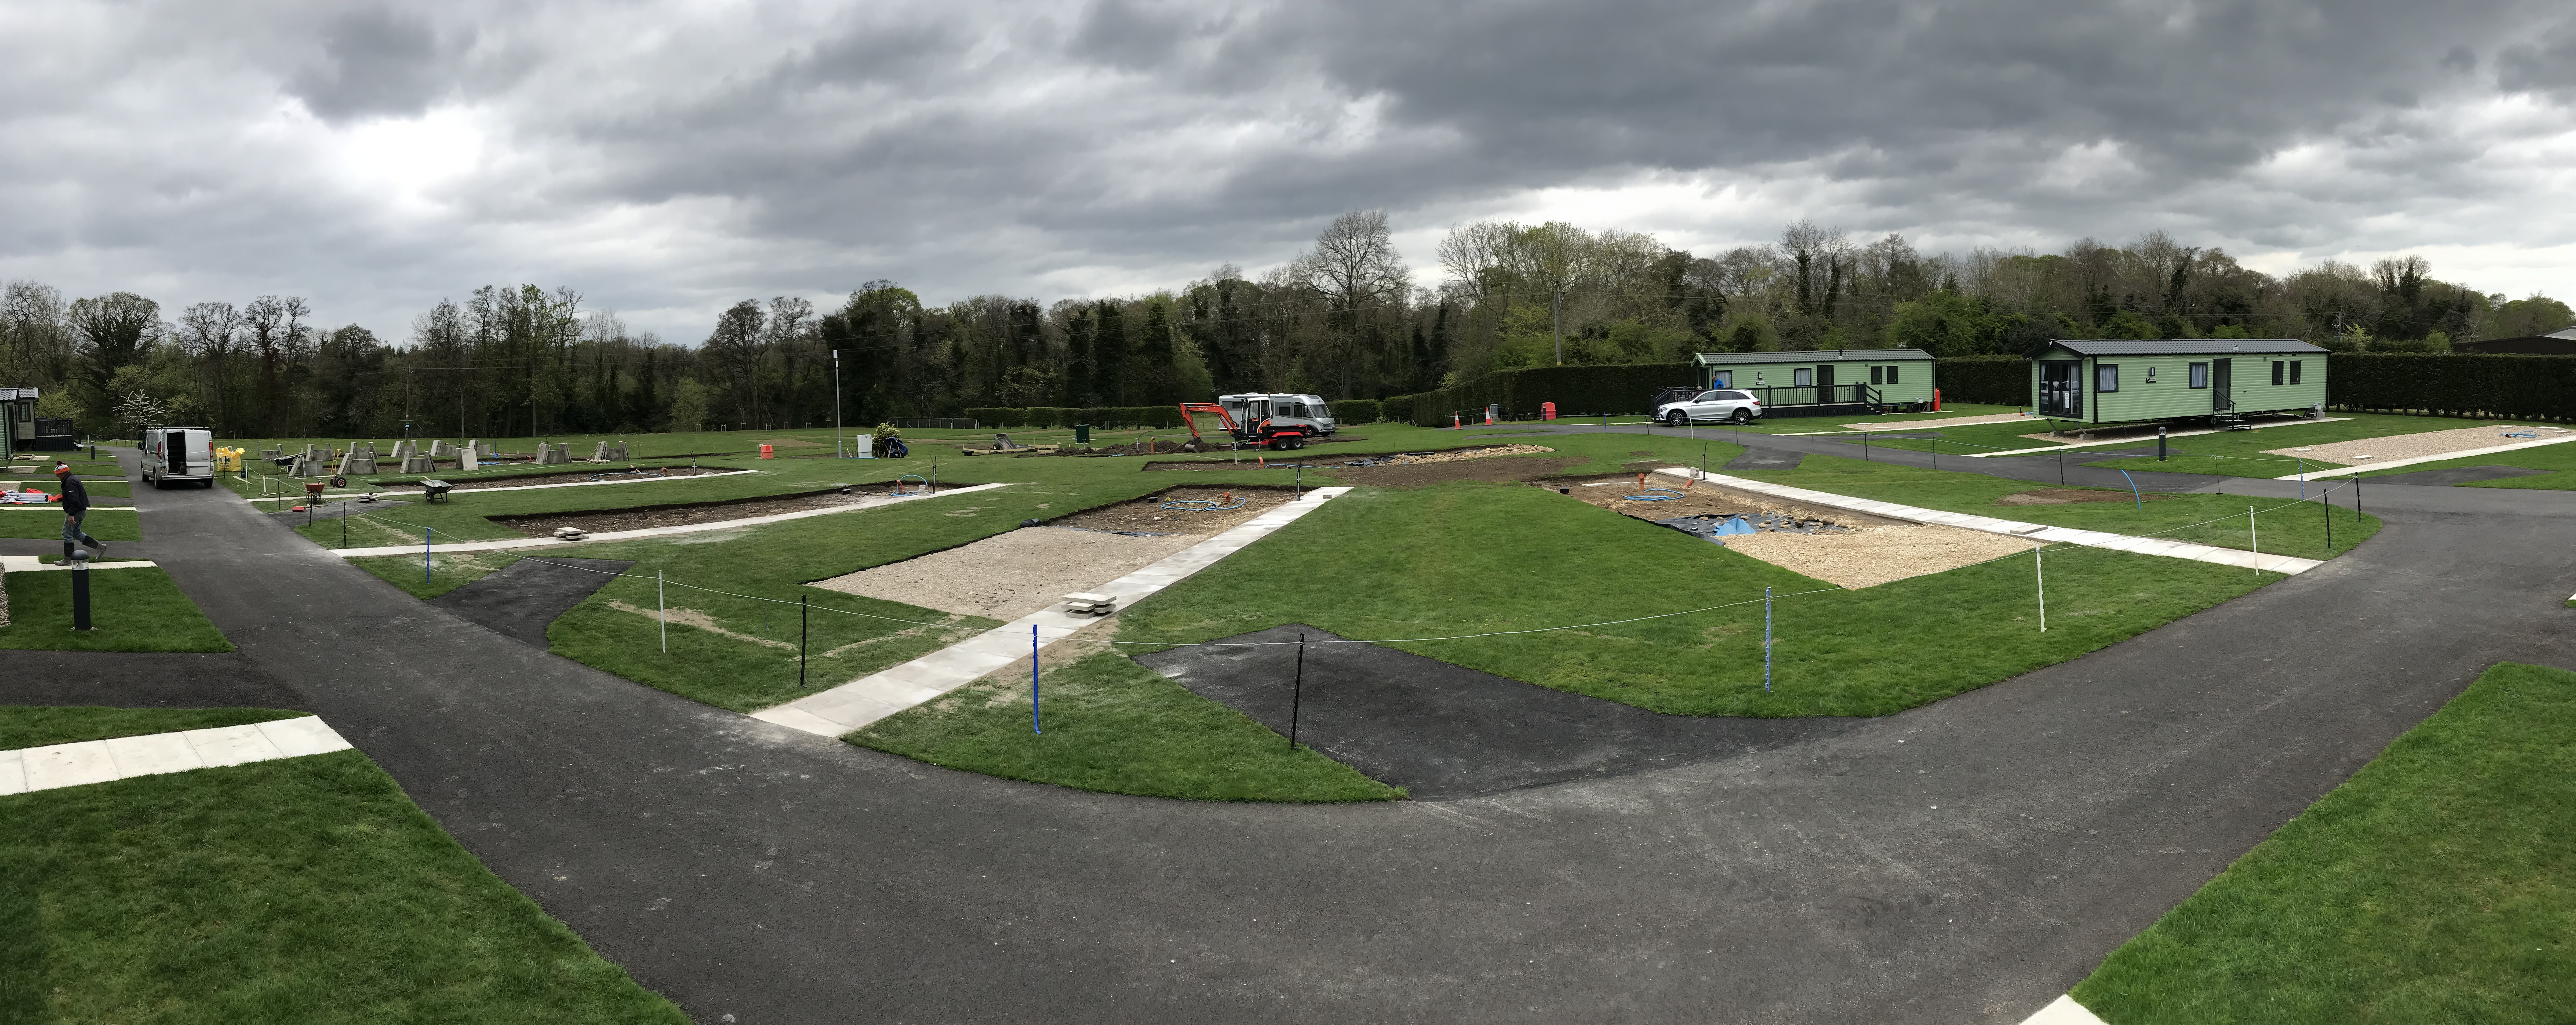 26th April - Phase 3 is almost complete!